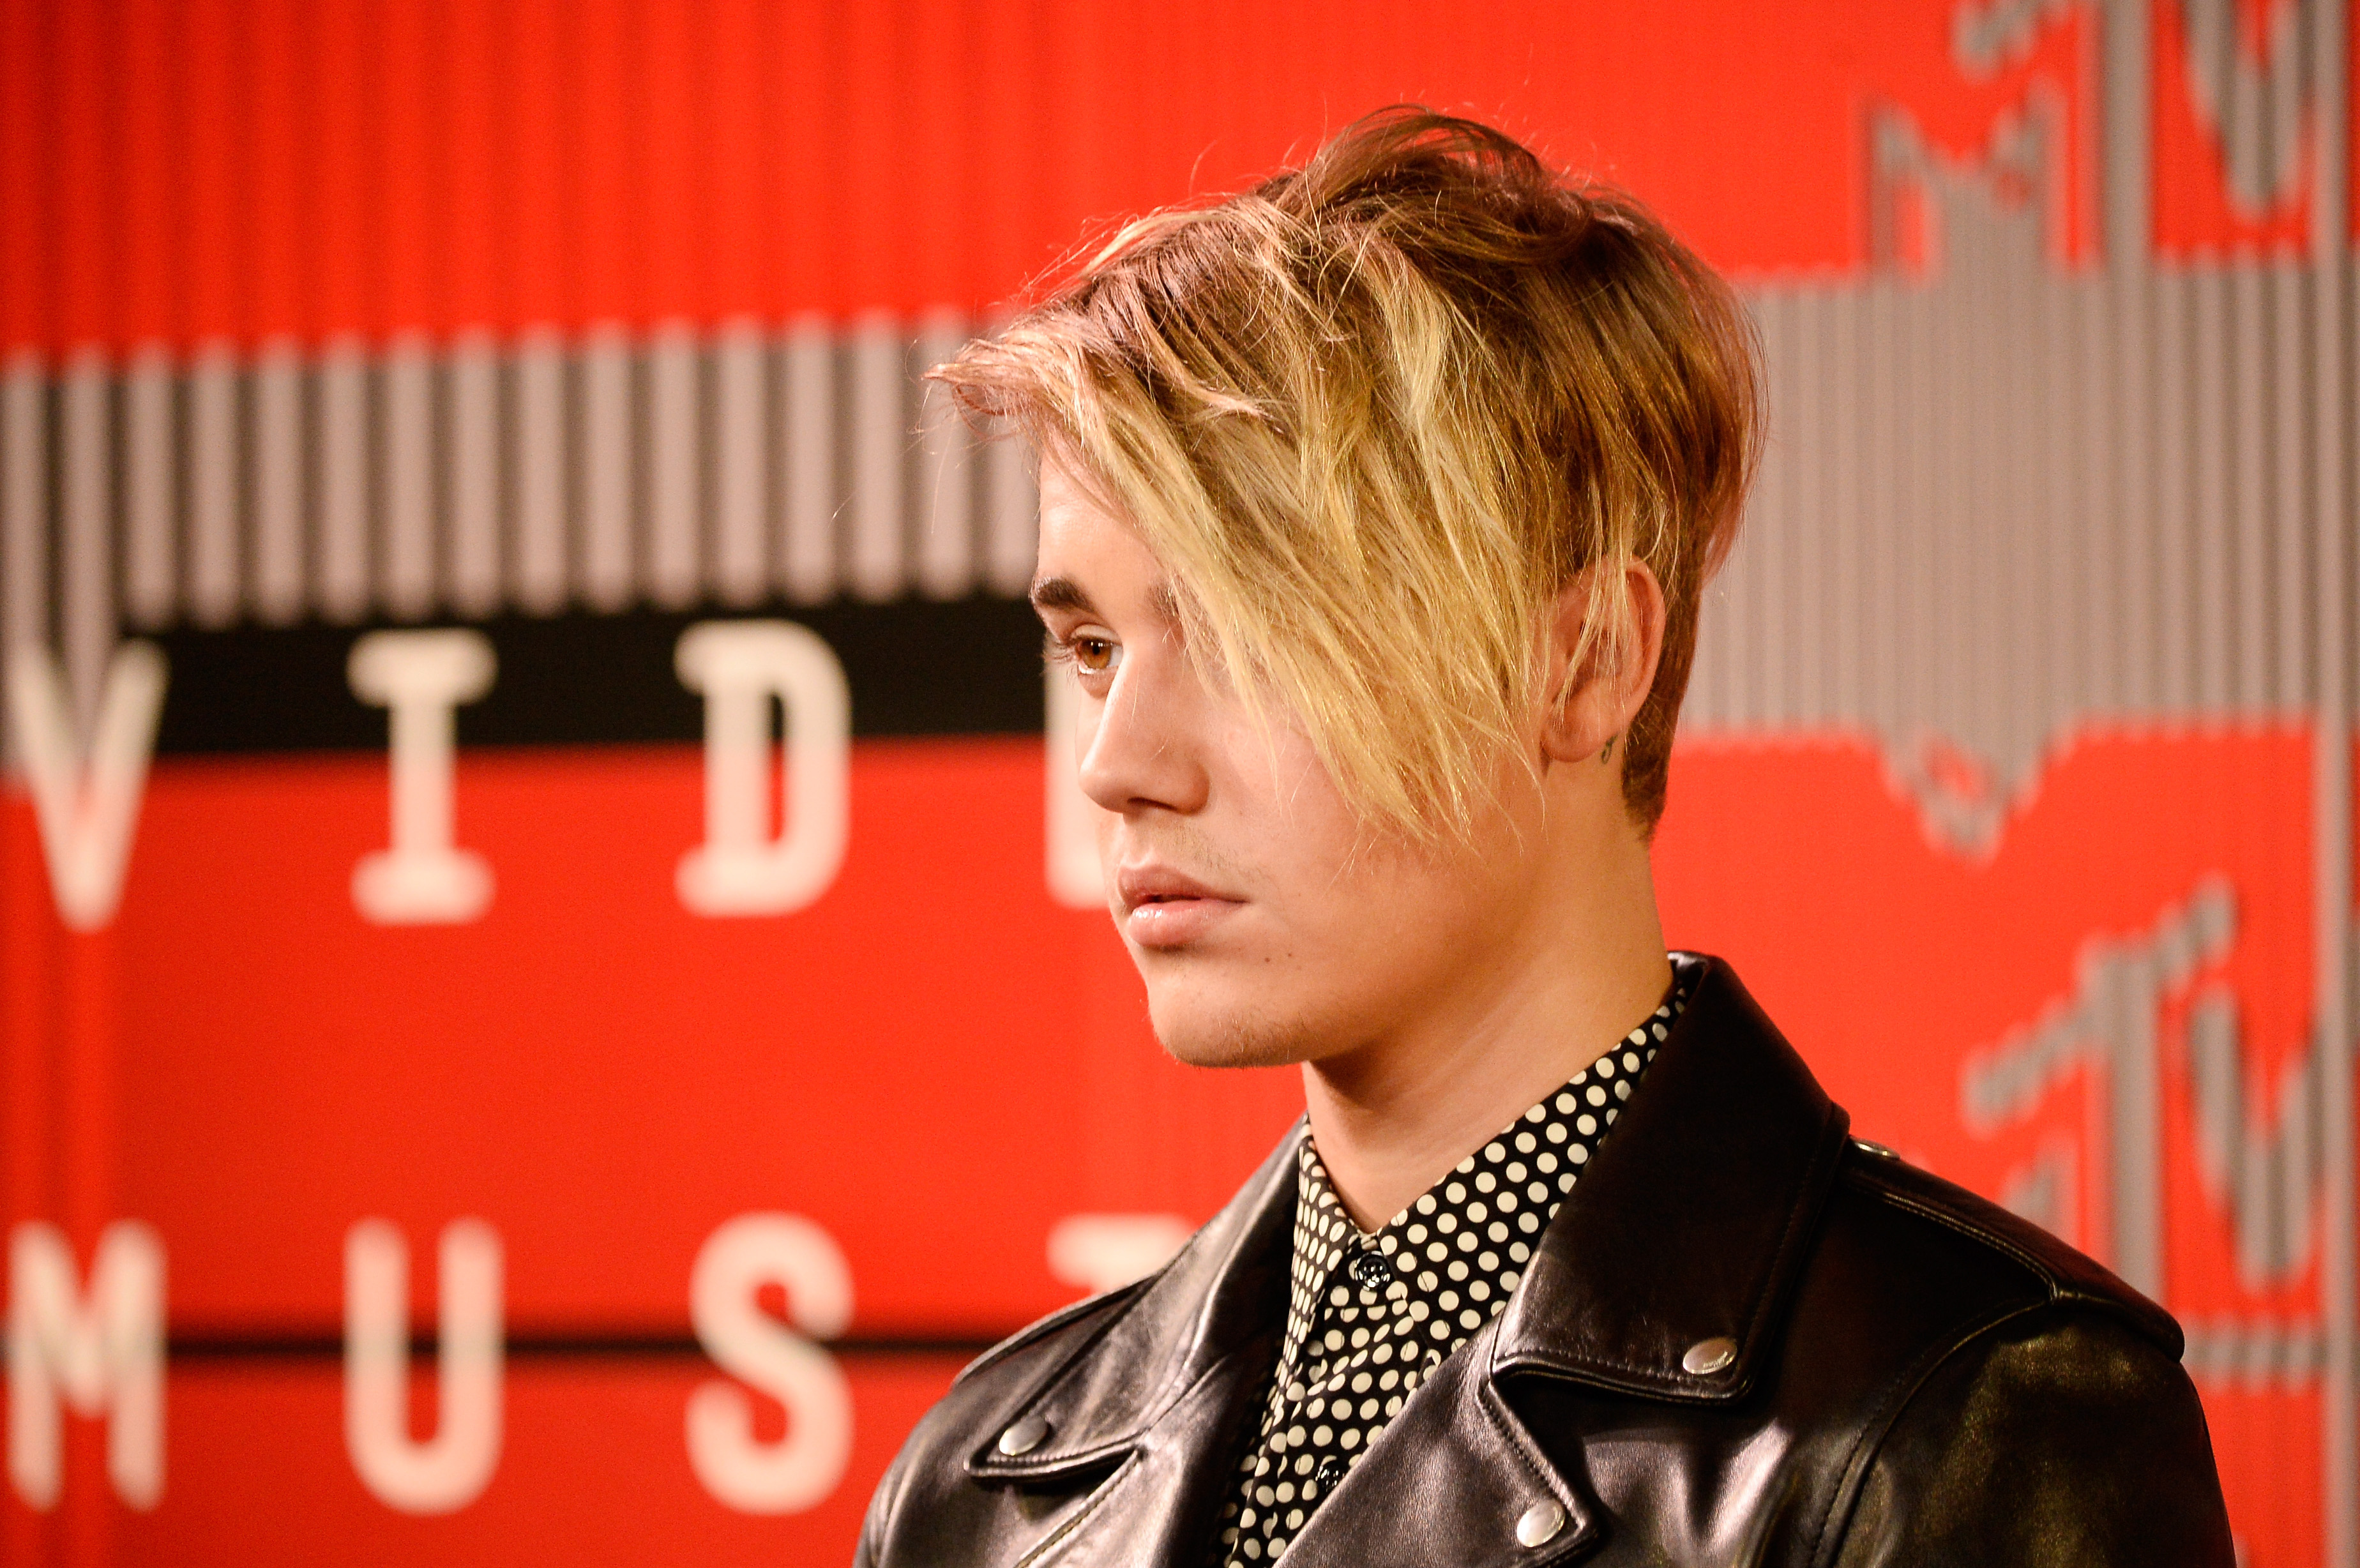 Justin Bieber Hair Memes Inspired By The VMAs - Hairstyle of justin bieber 2015